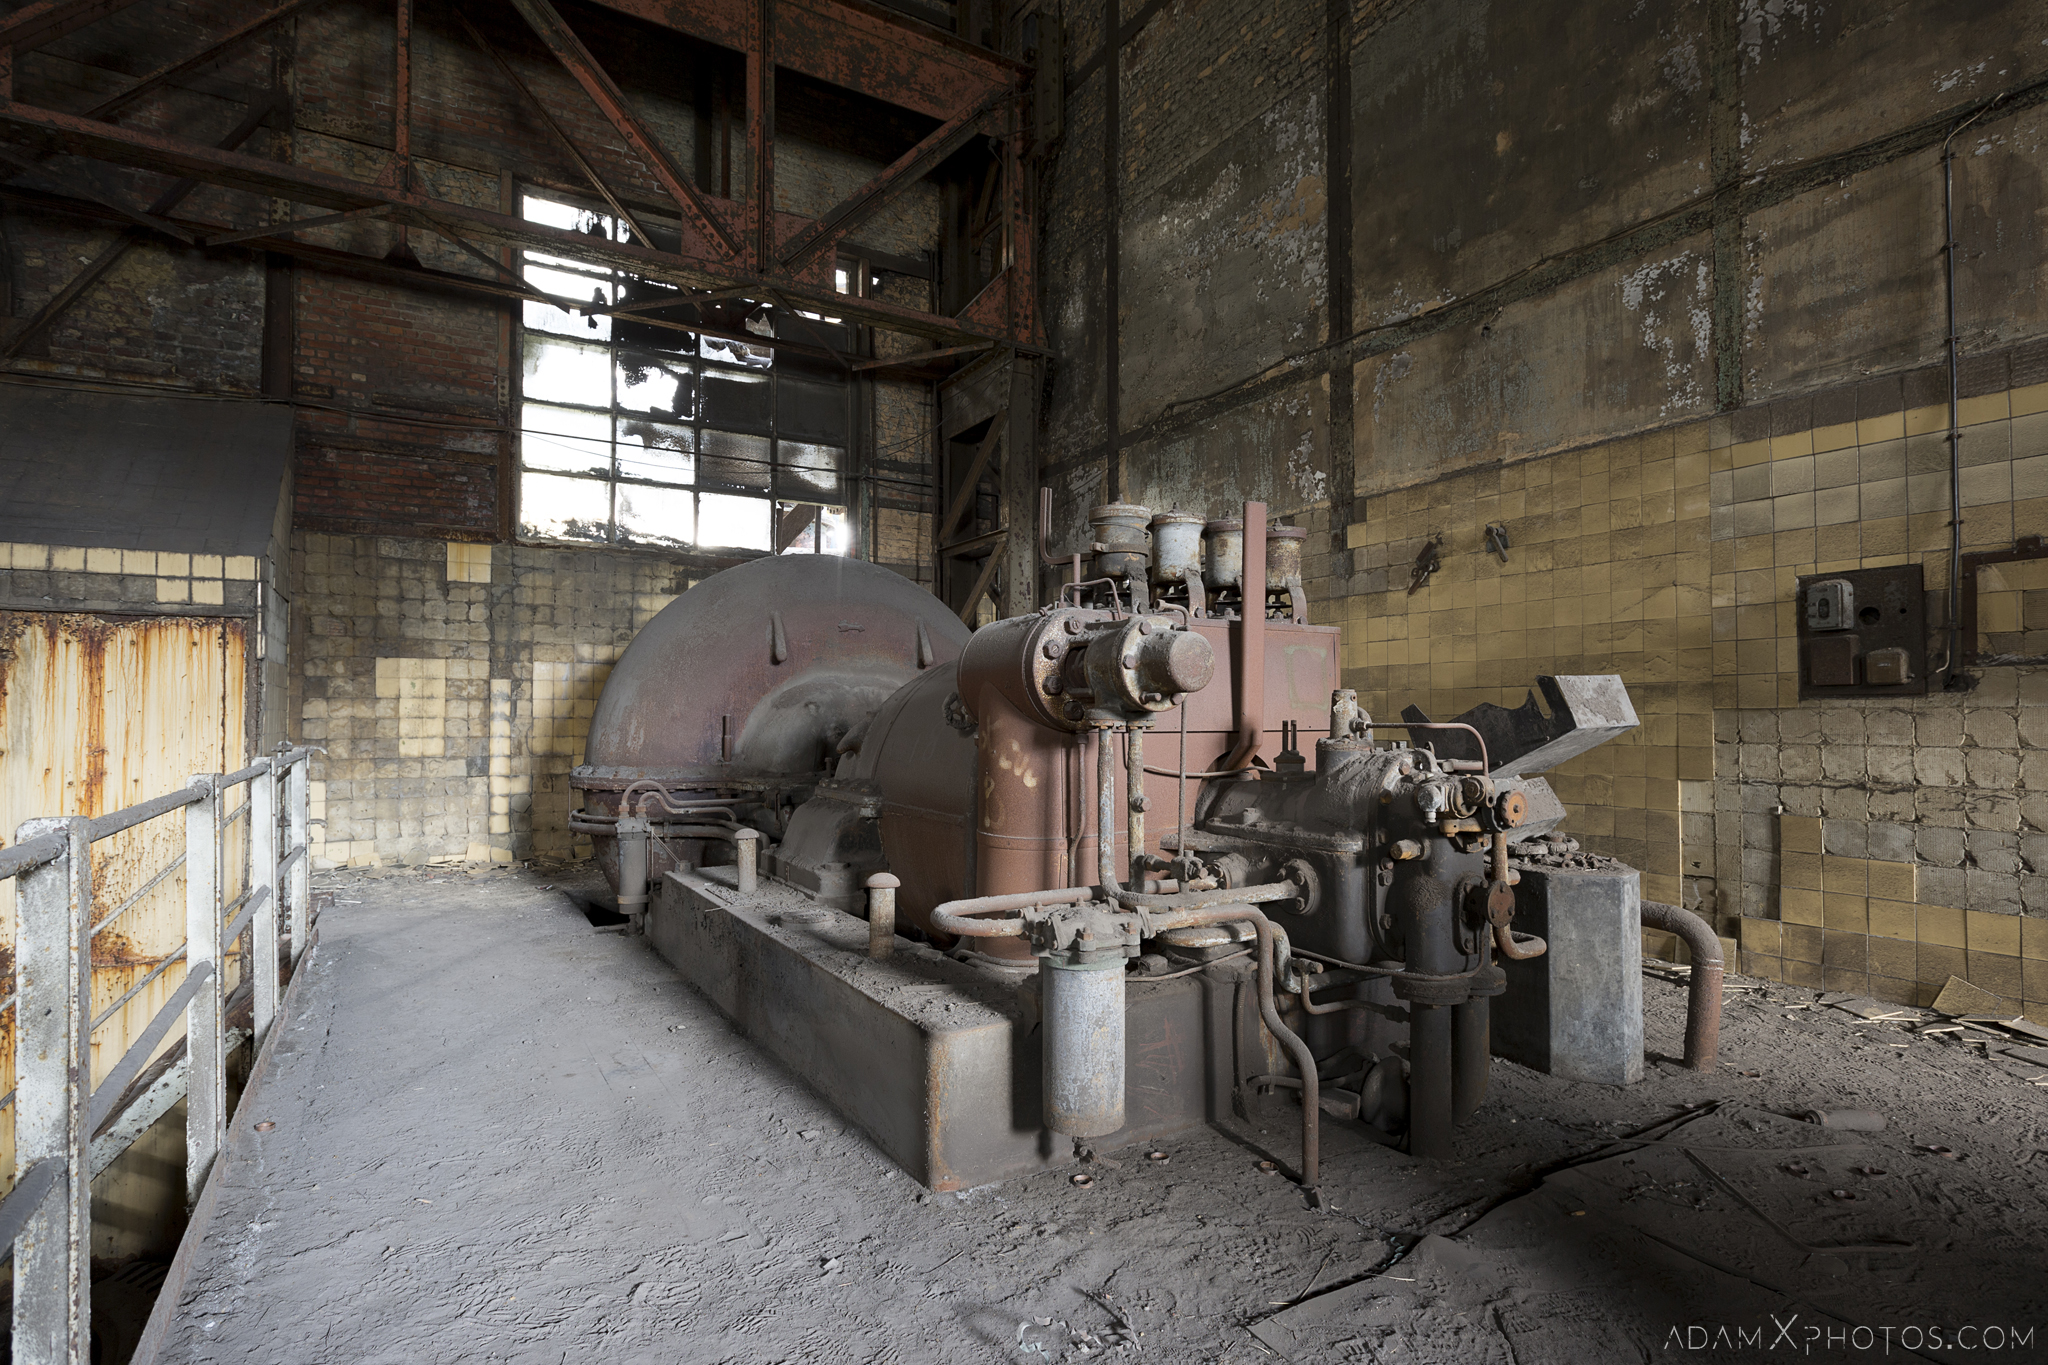 Vintage turbine HF4 power plant wet dogs AMEC Industrial Industry Adam X Urban Exploration Belgium Access 2017 Abandoned decay lost forgotten derelict location creepy haunting eerie